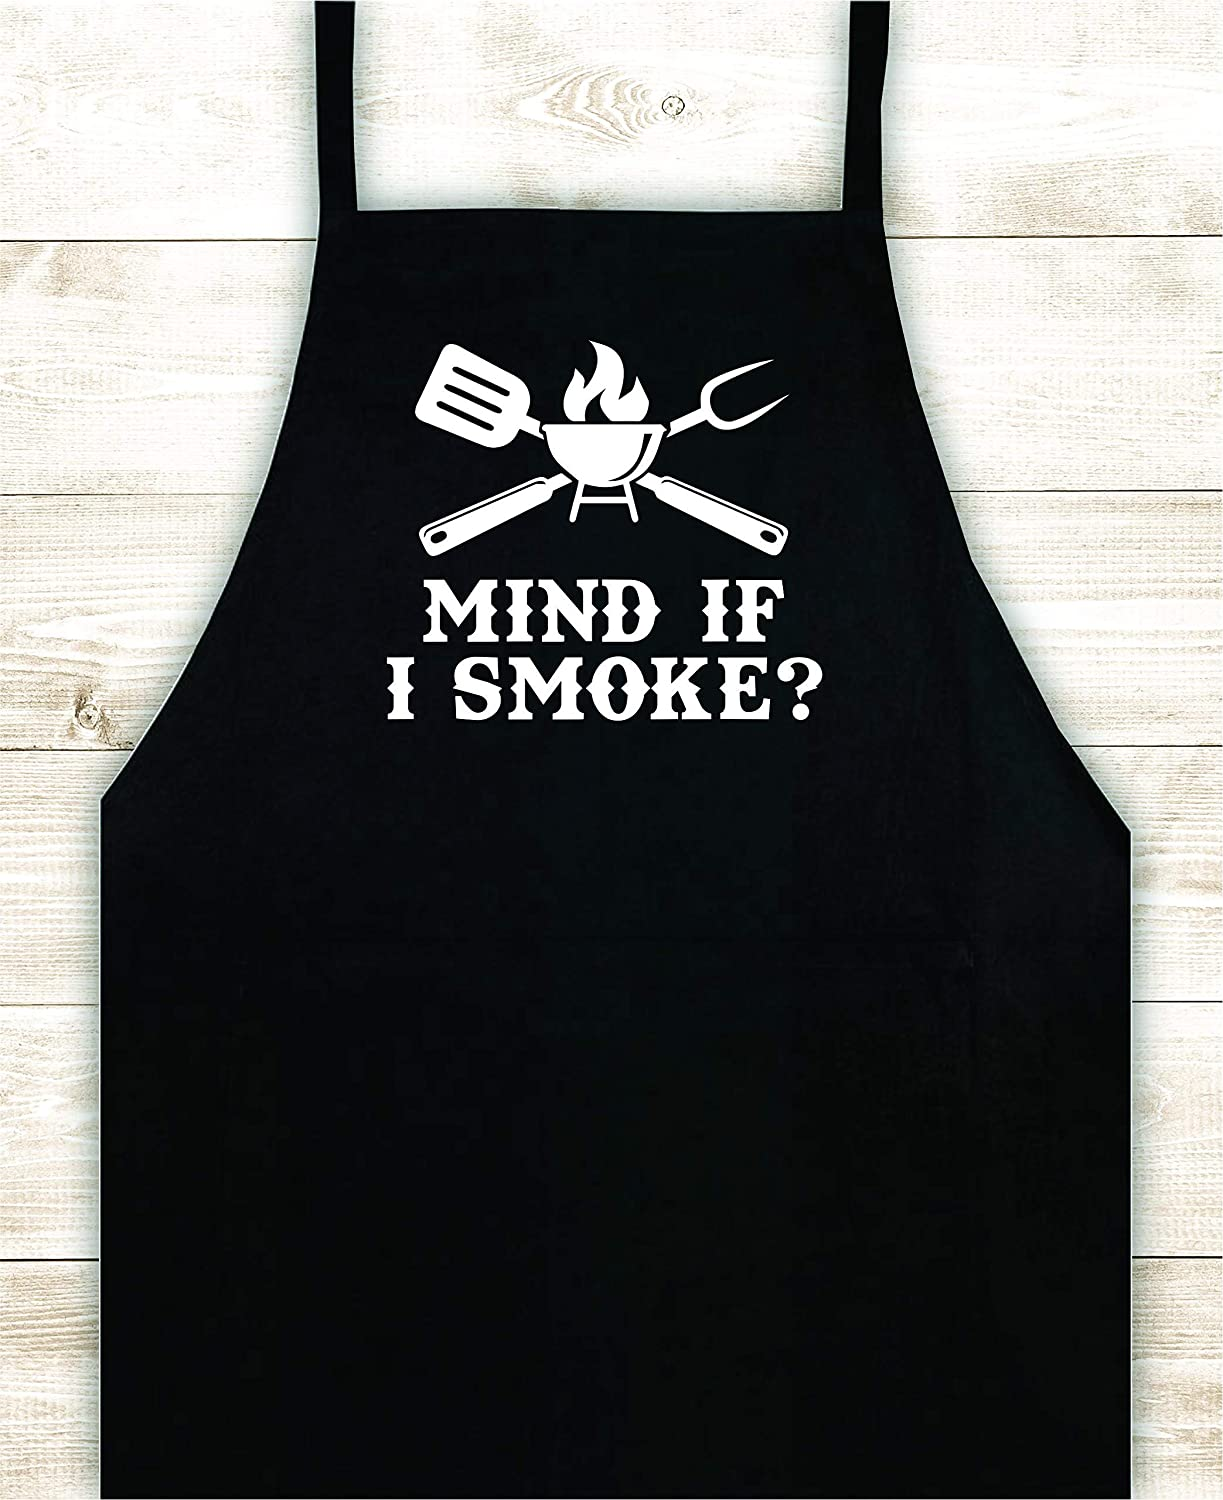 Boop Decals Mind If I Smoke Kitchen Apron Custom Design Heat Press Vinyl BBQ Cook Grill Barbeque Chef Funny Gift Cow Steak Men Pig Pork Bacon Party Girls Food Father Gift Birthday Dad